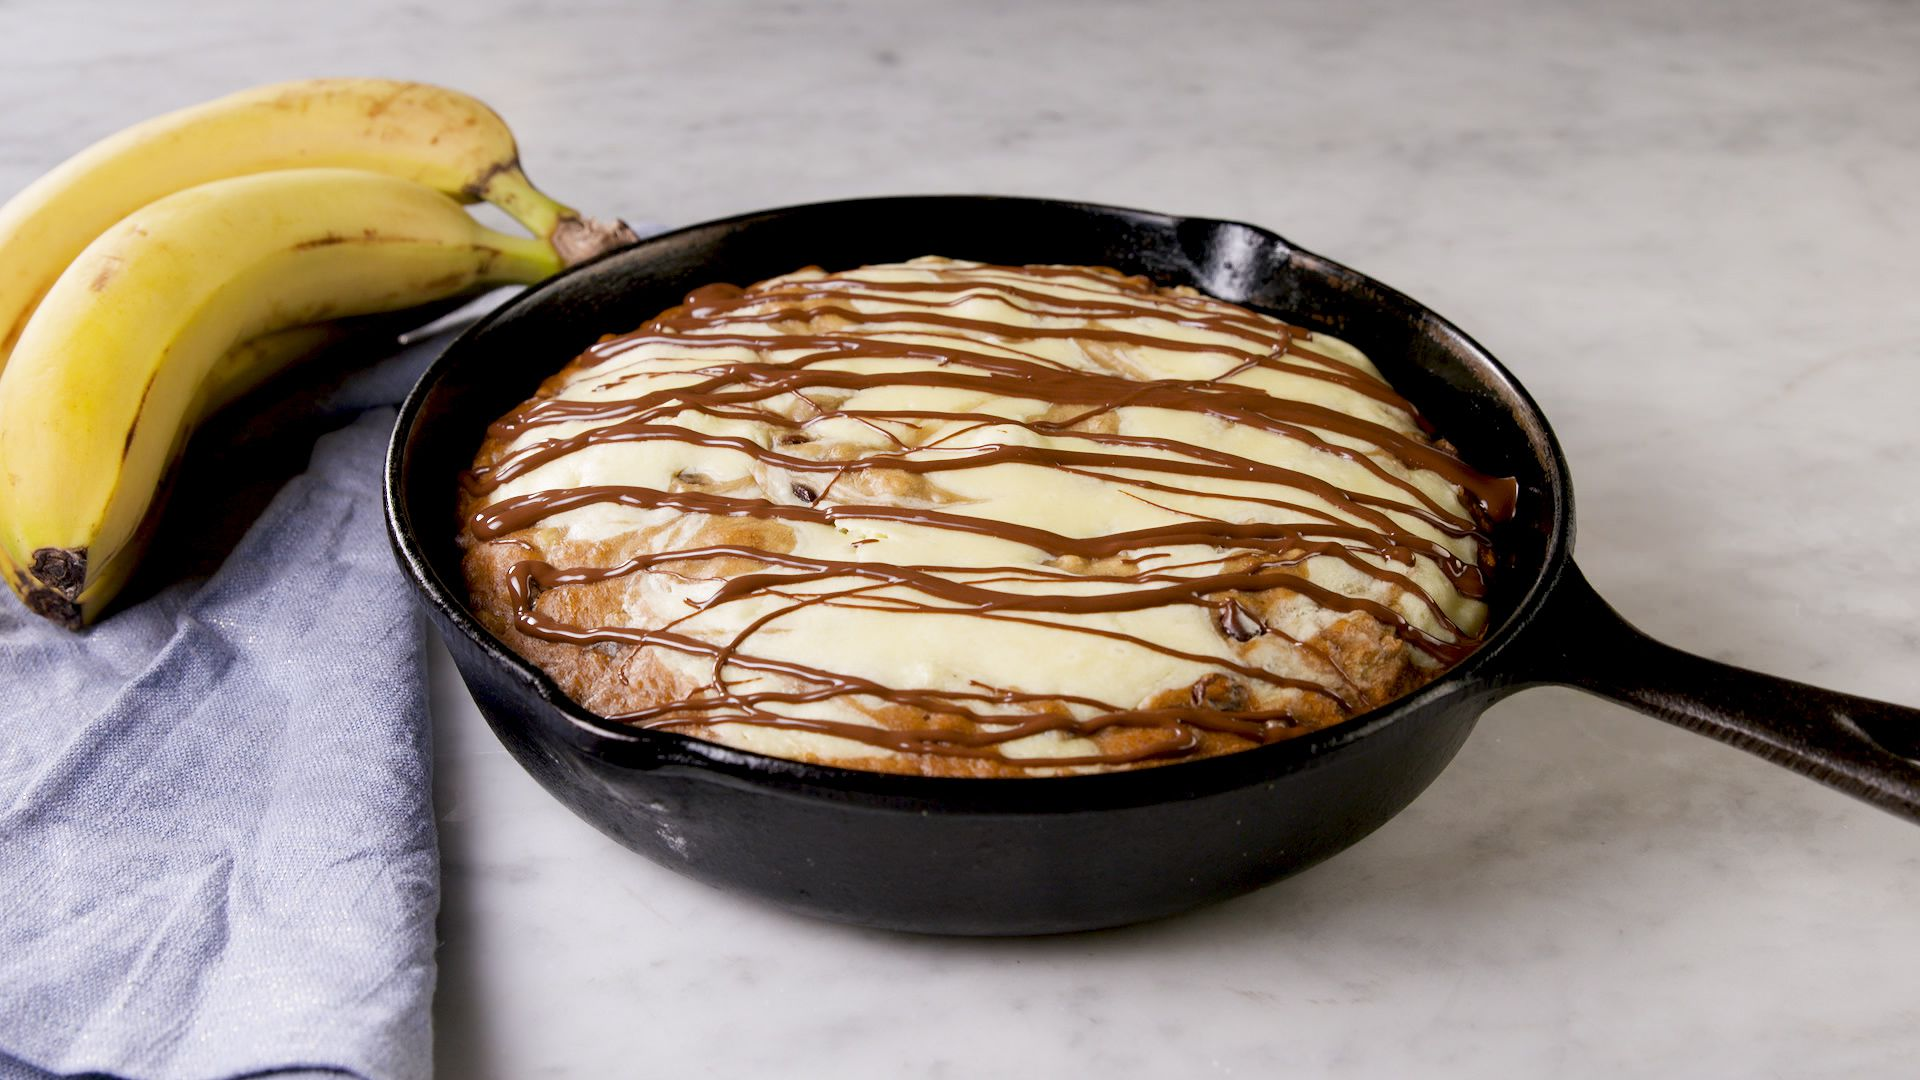 Skillet Cheesecake Banana Bread